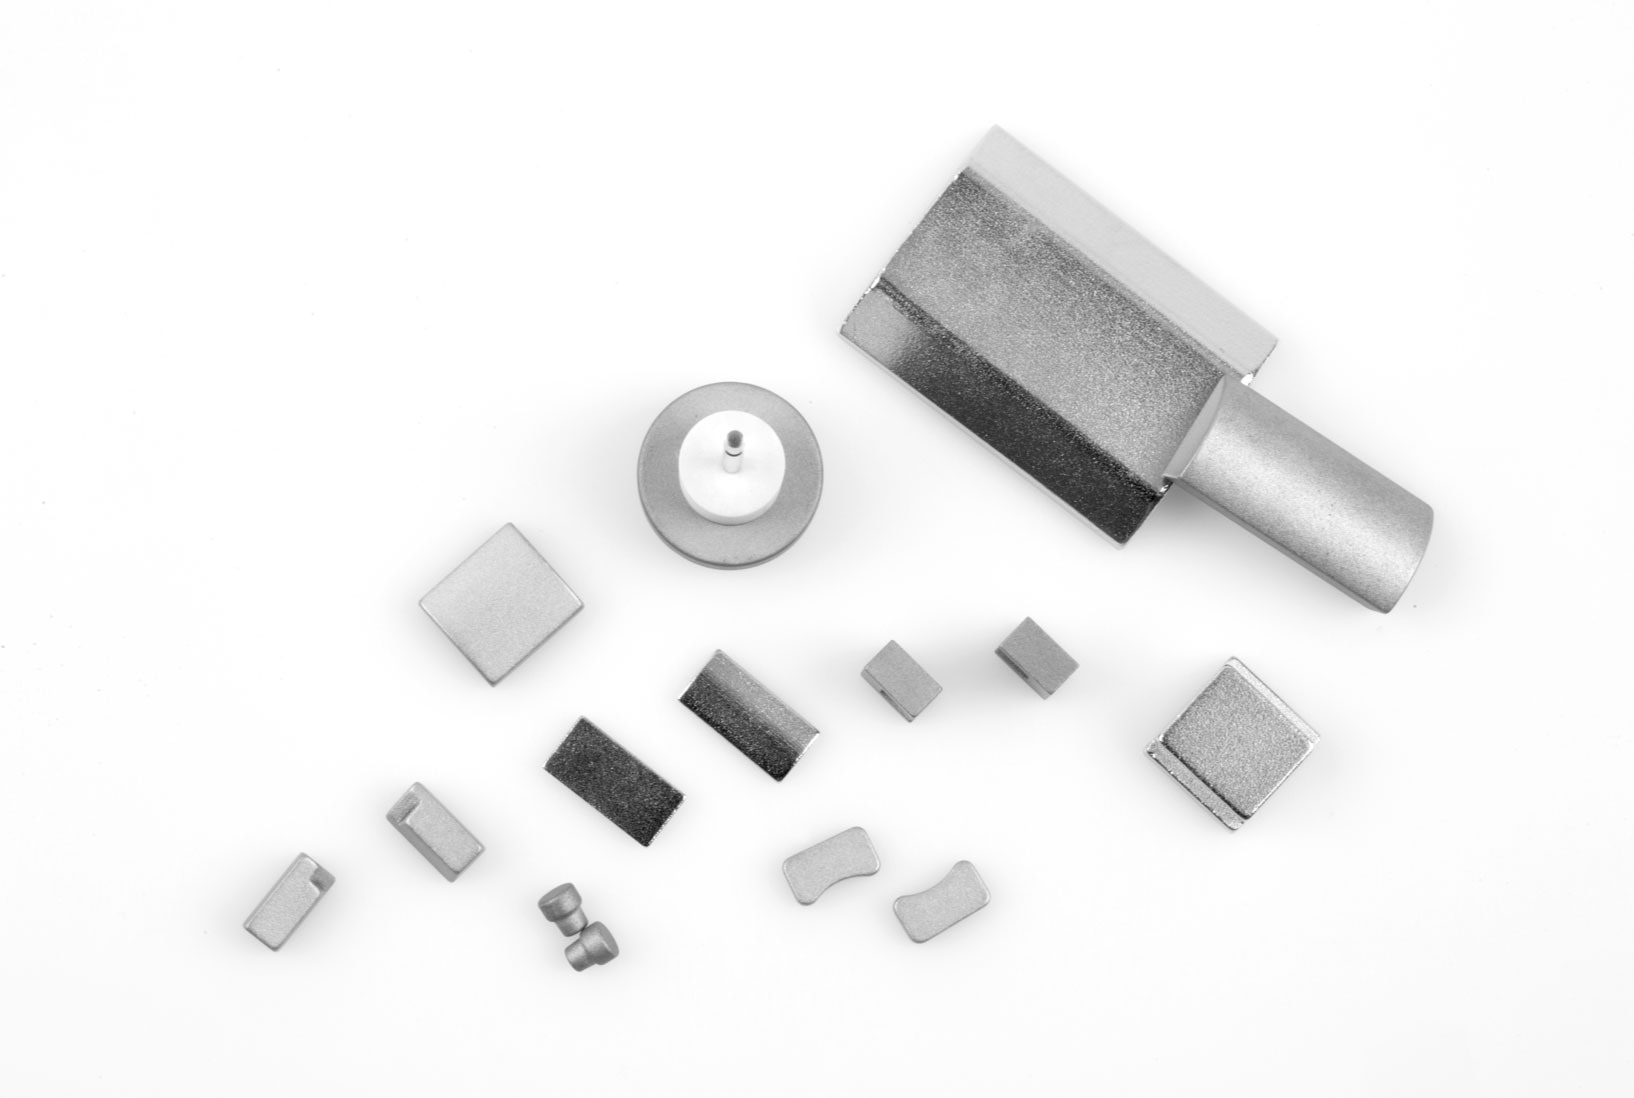 Typical forms and sizes of Samarium Colbalt Magnets